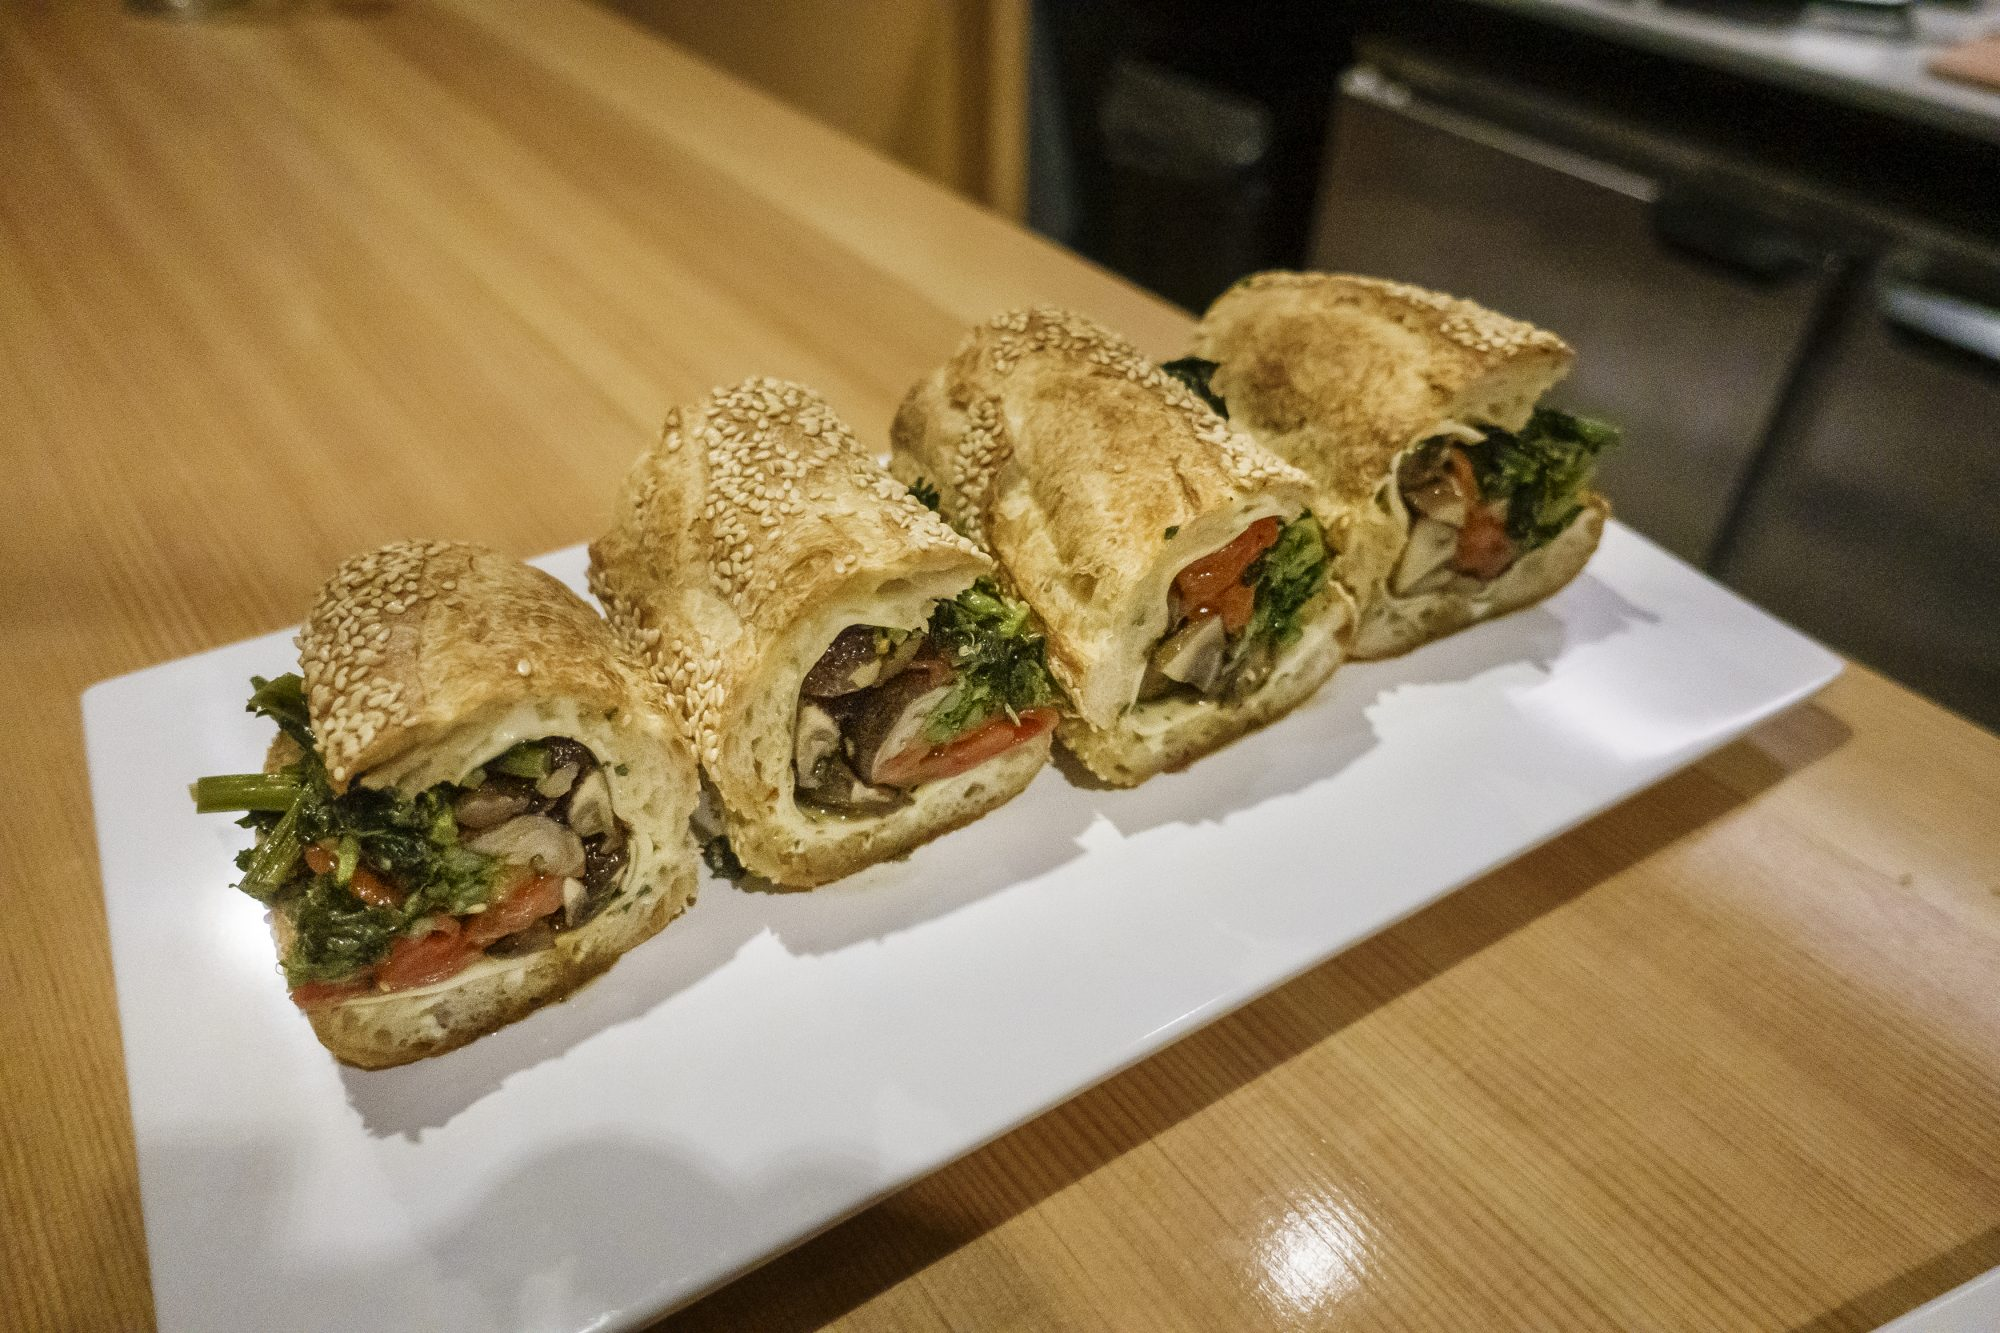 Philly's Famed Pizzeria Beddia Has a Hoagie Tasting Menu, and Nothing Is the Same